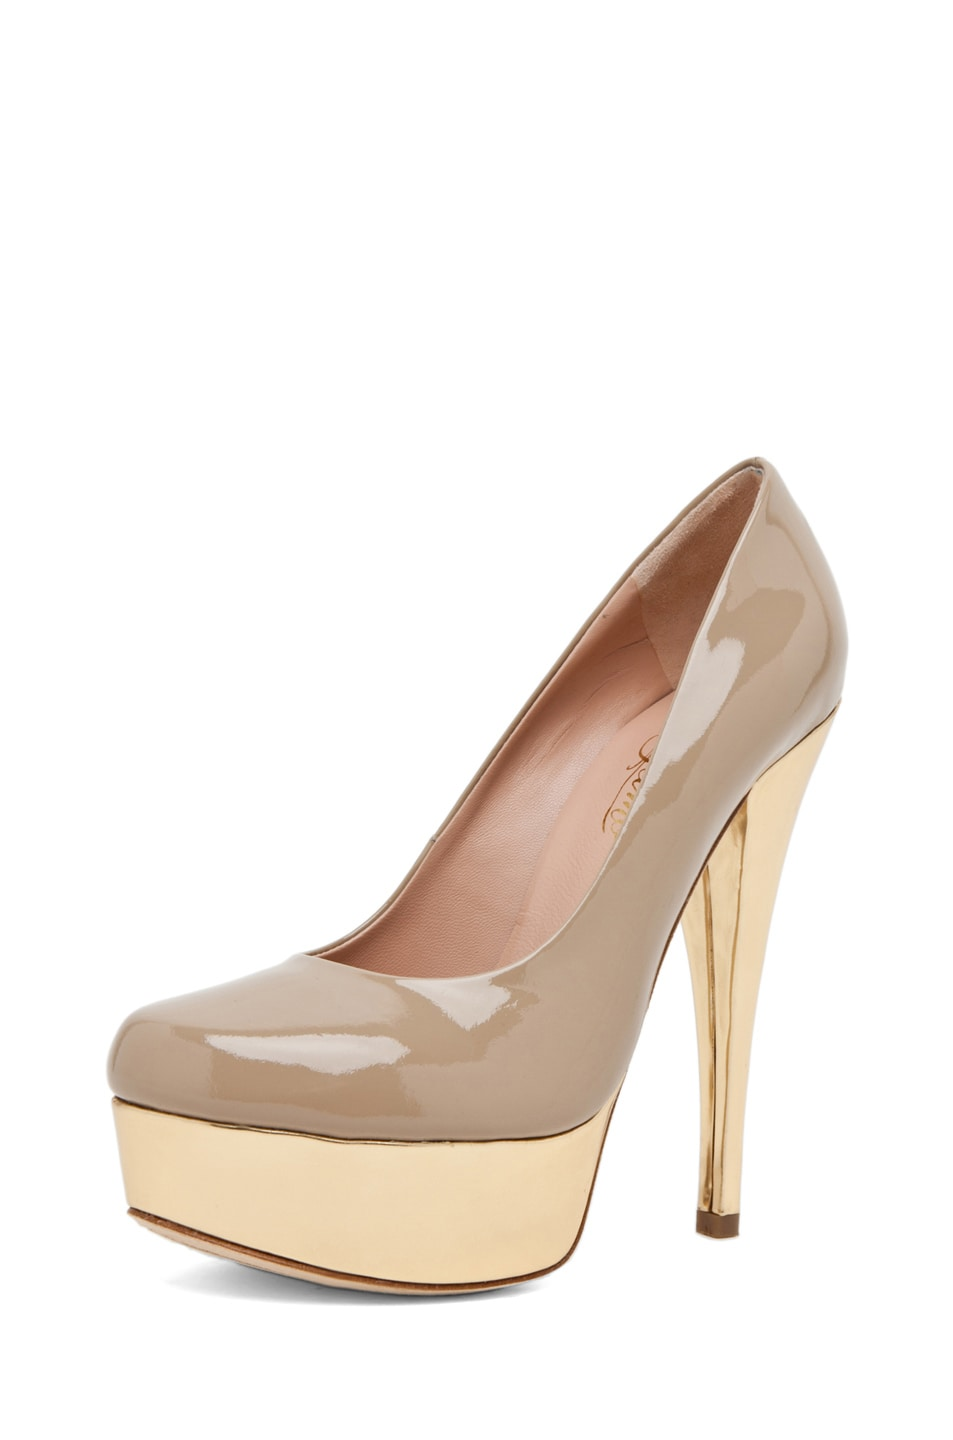 Image 2 of Alejandro Ingelmo Sophia Pump in Sand/Gold